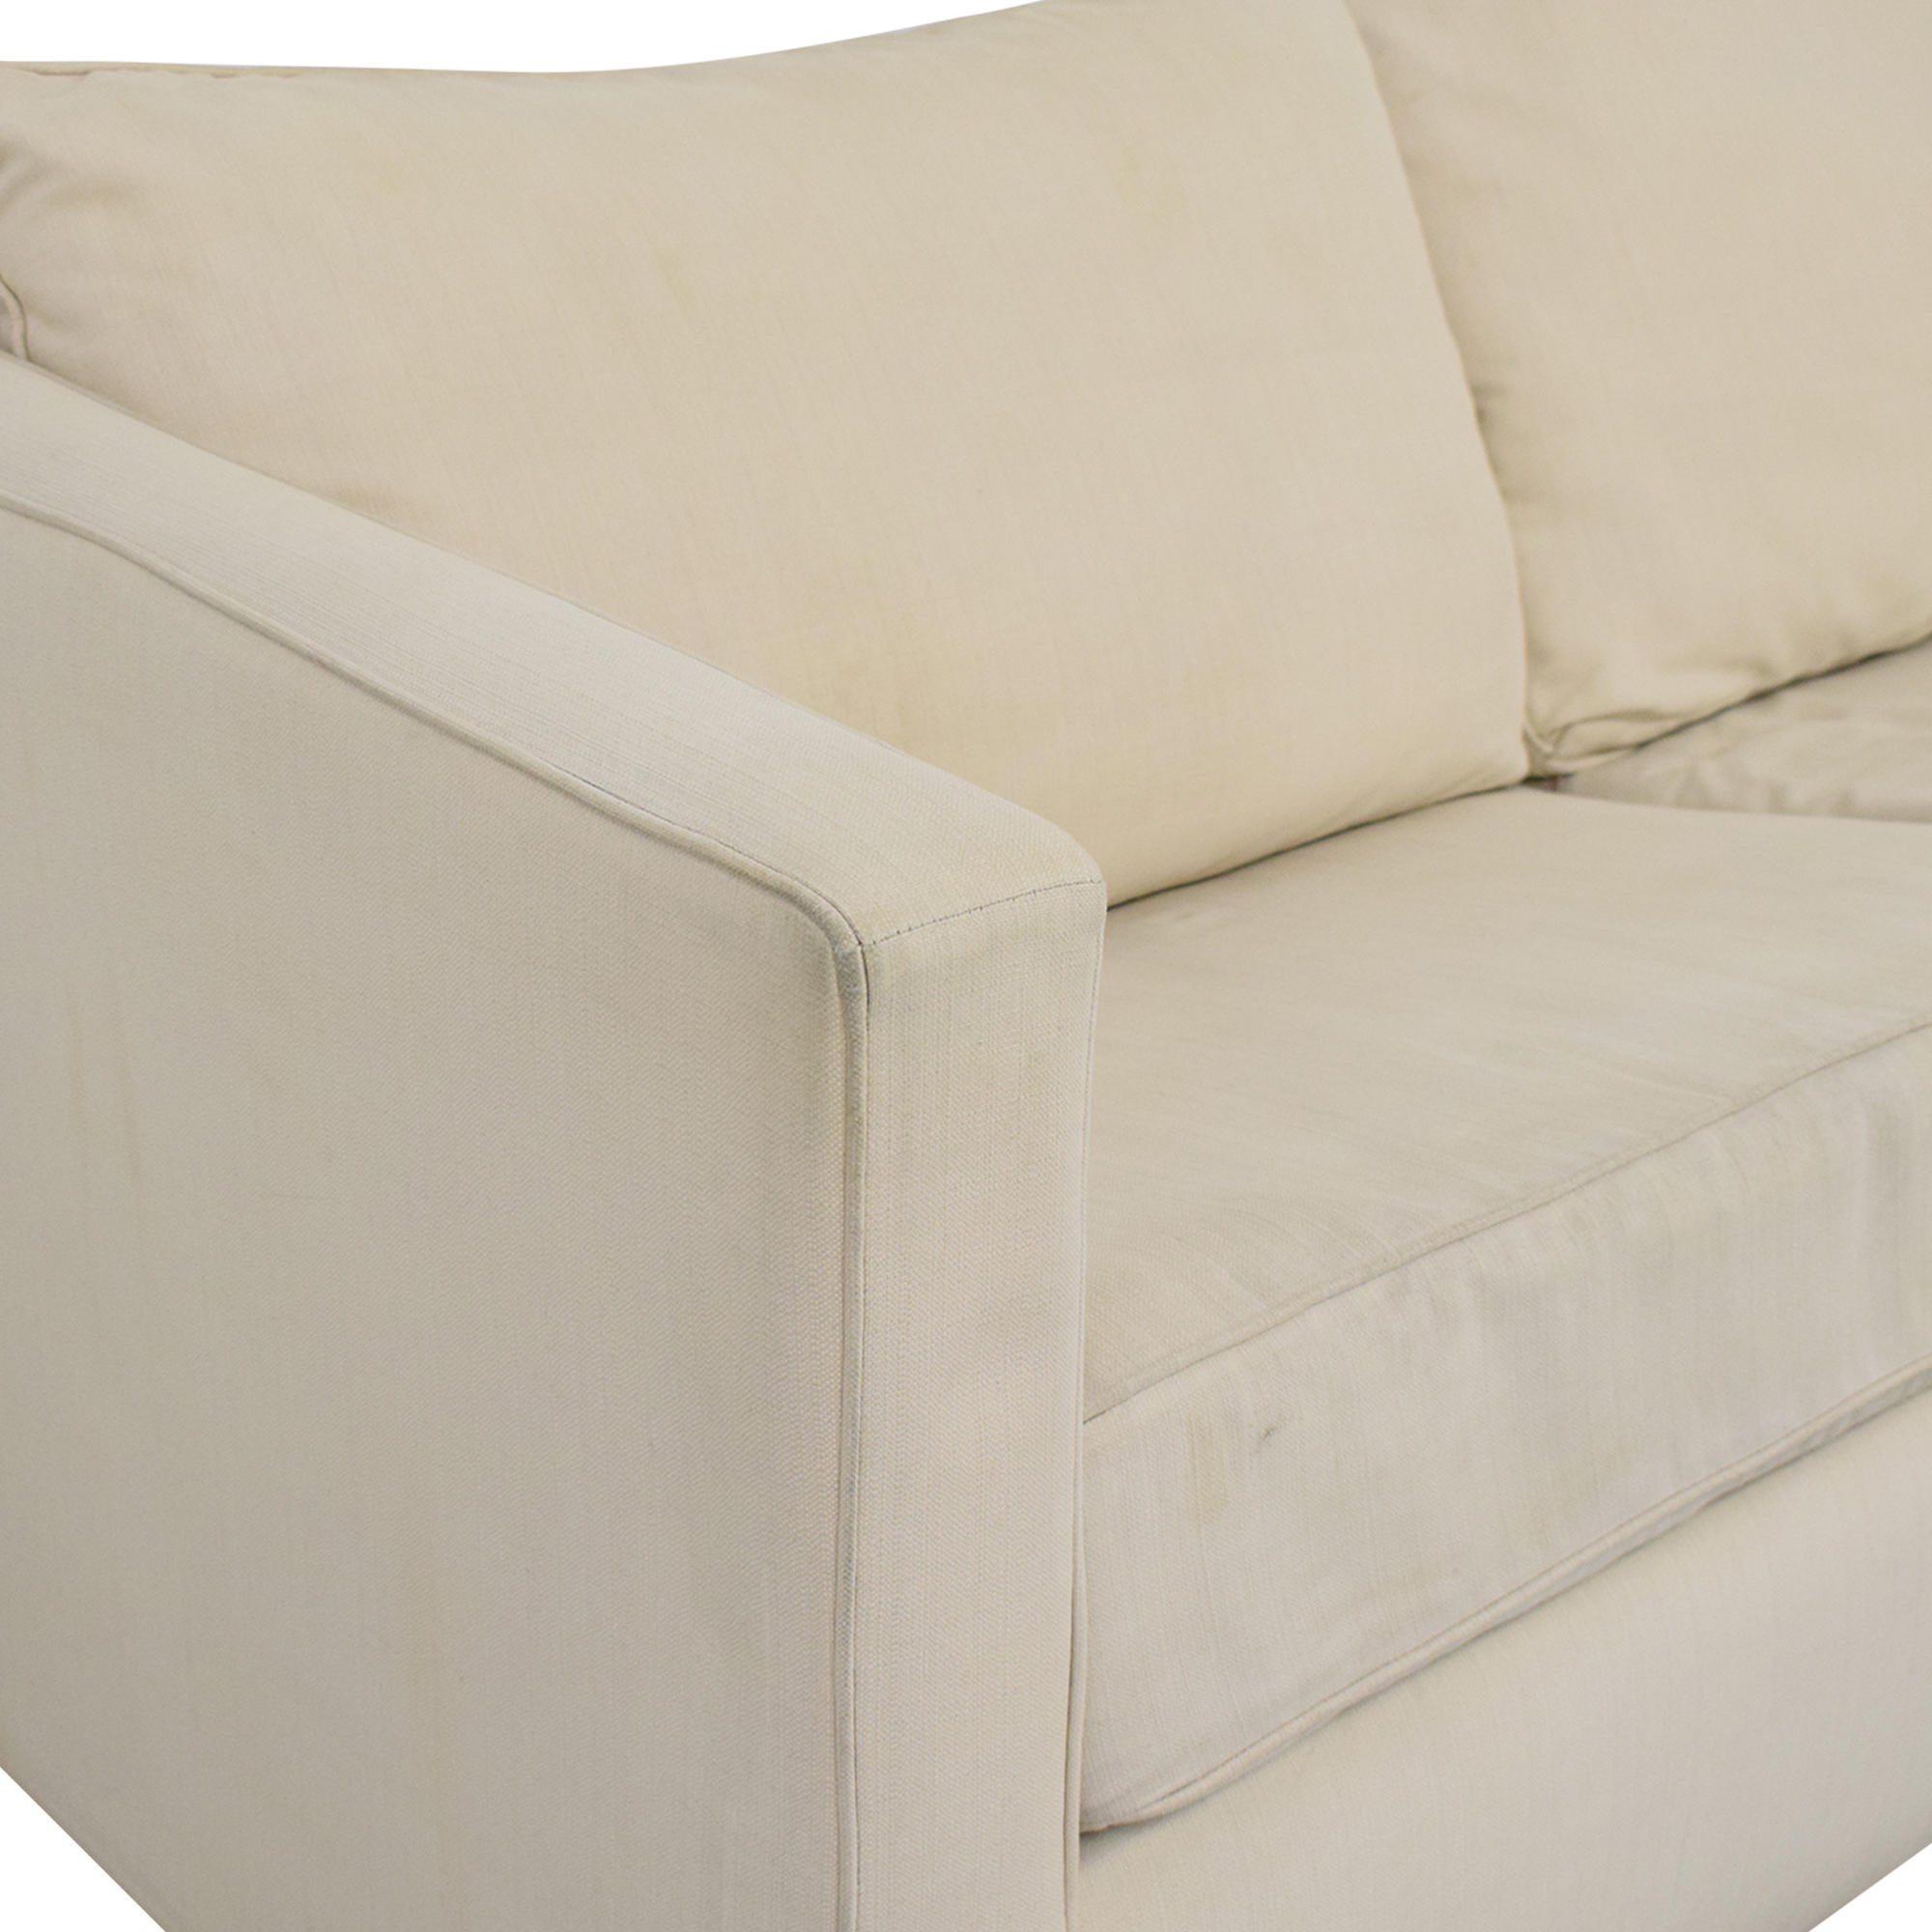 KFI Single Cushion Sofa Bed sale